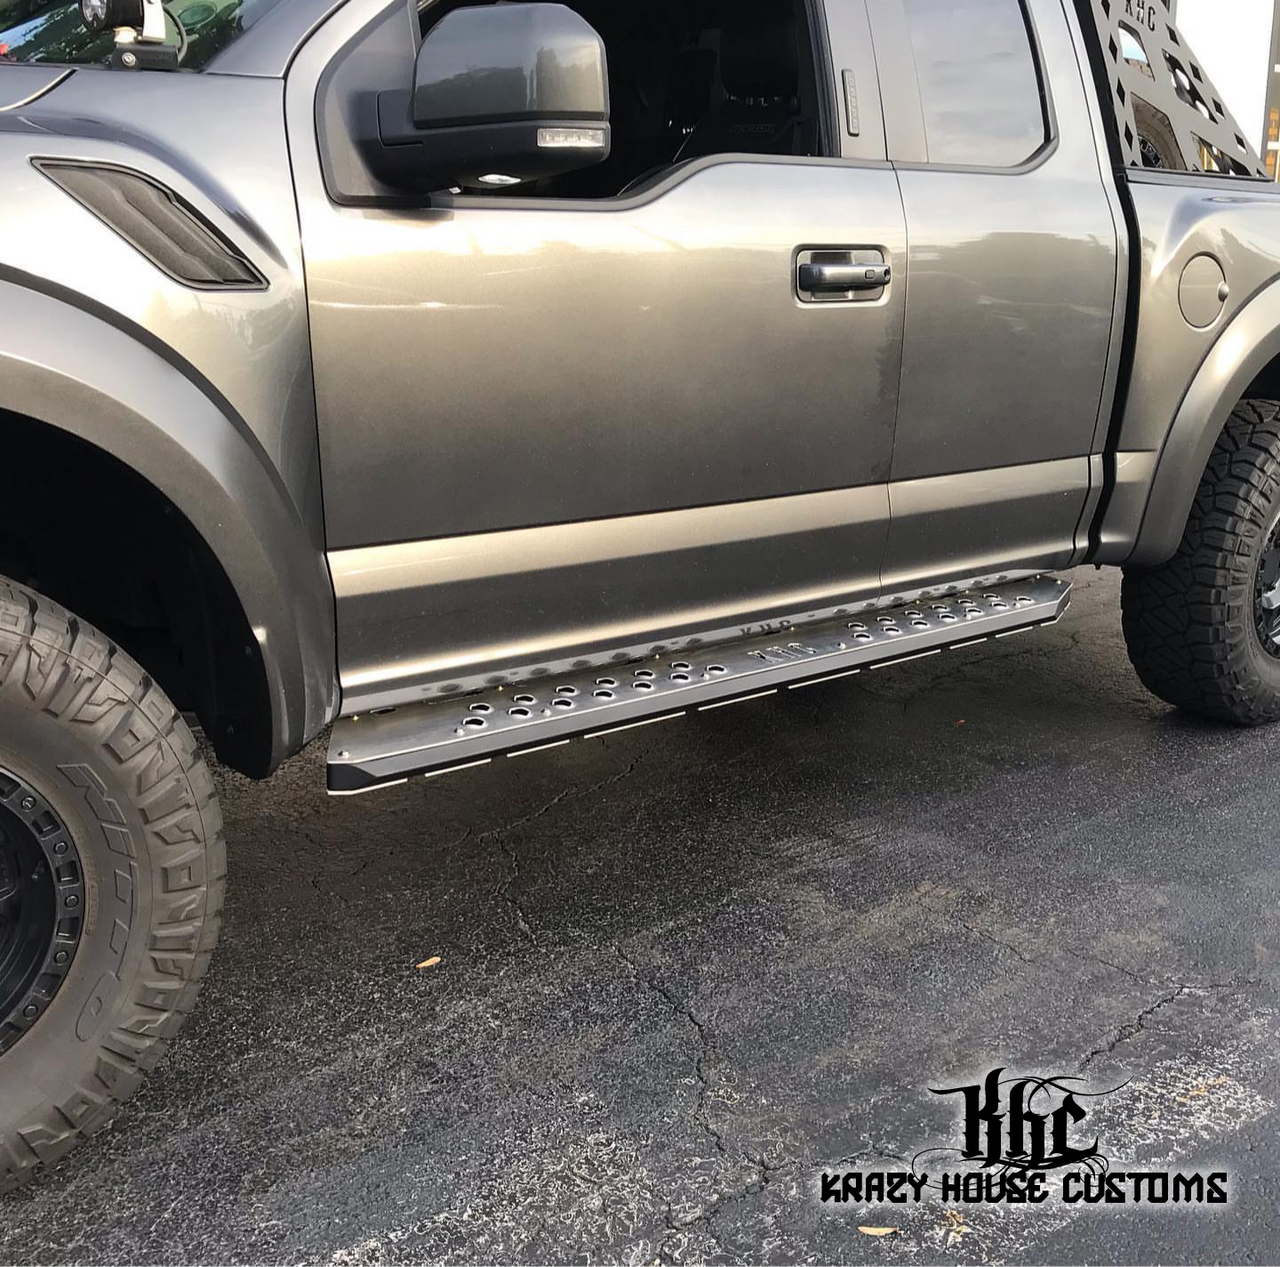 KHC OFF-ROAD RUNNING BOARDS / ROCK SLIDERS